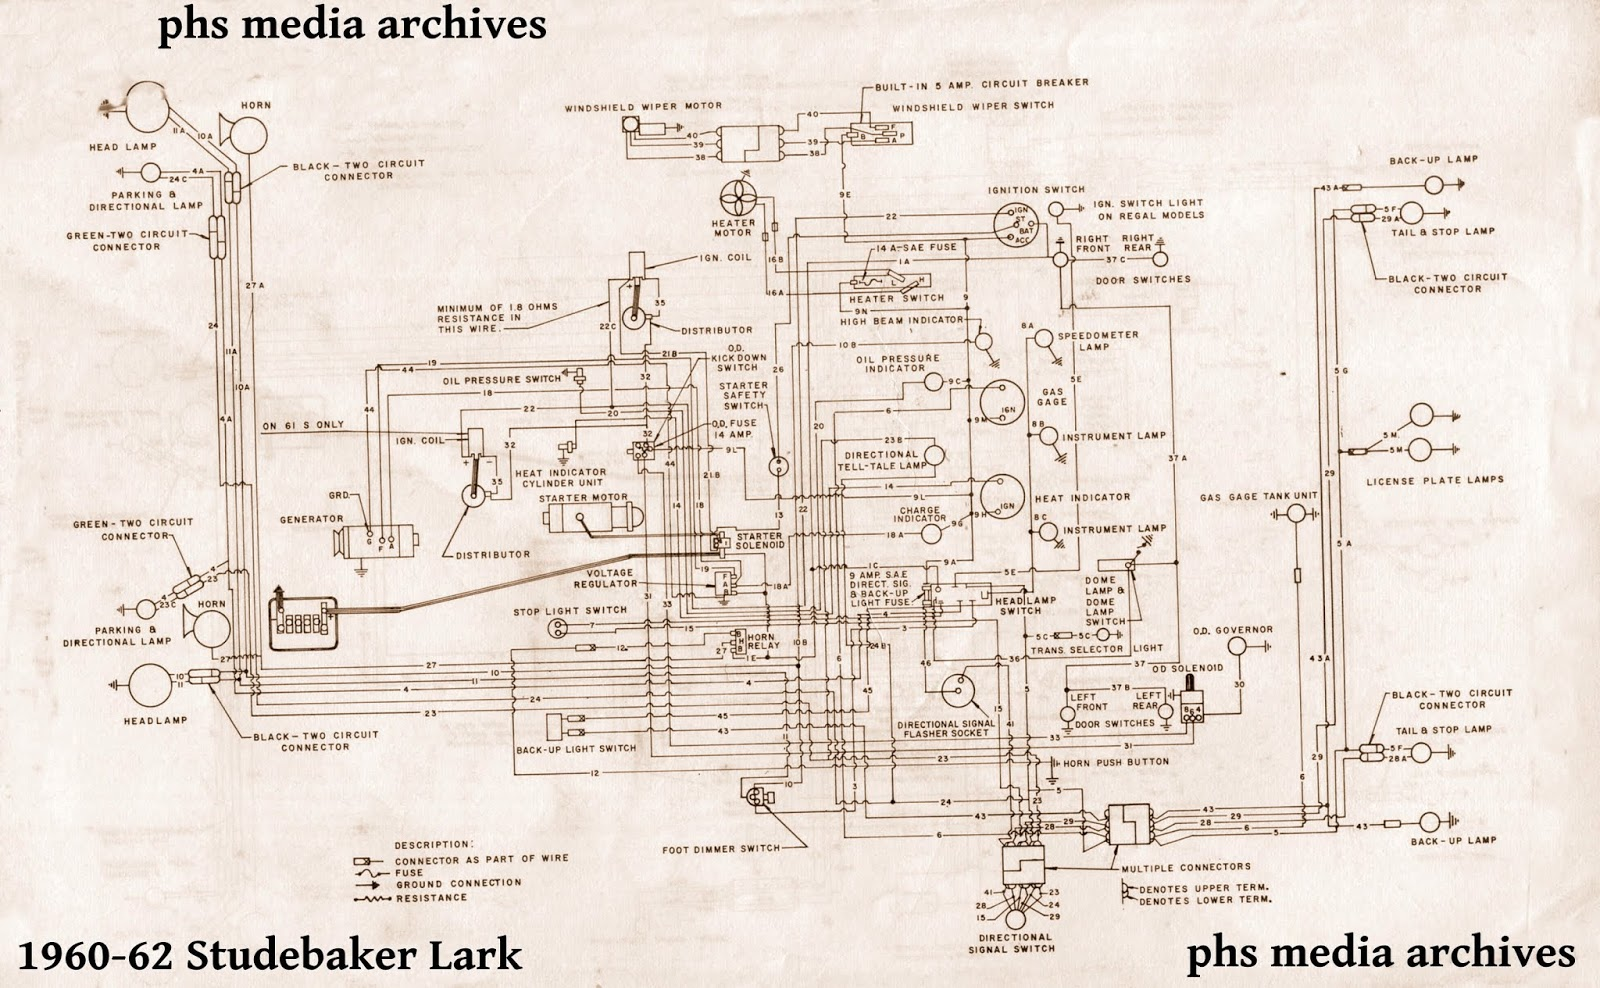 tech series studebaker lark cruiser wiring diagrams 1950 studebaker champion turn signal circuit diagram shown here [ 1600 x 988 Pixel ]